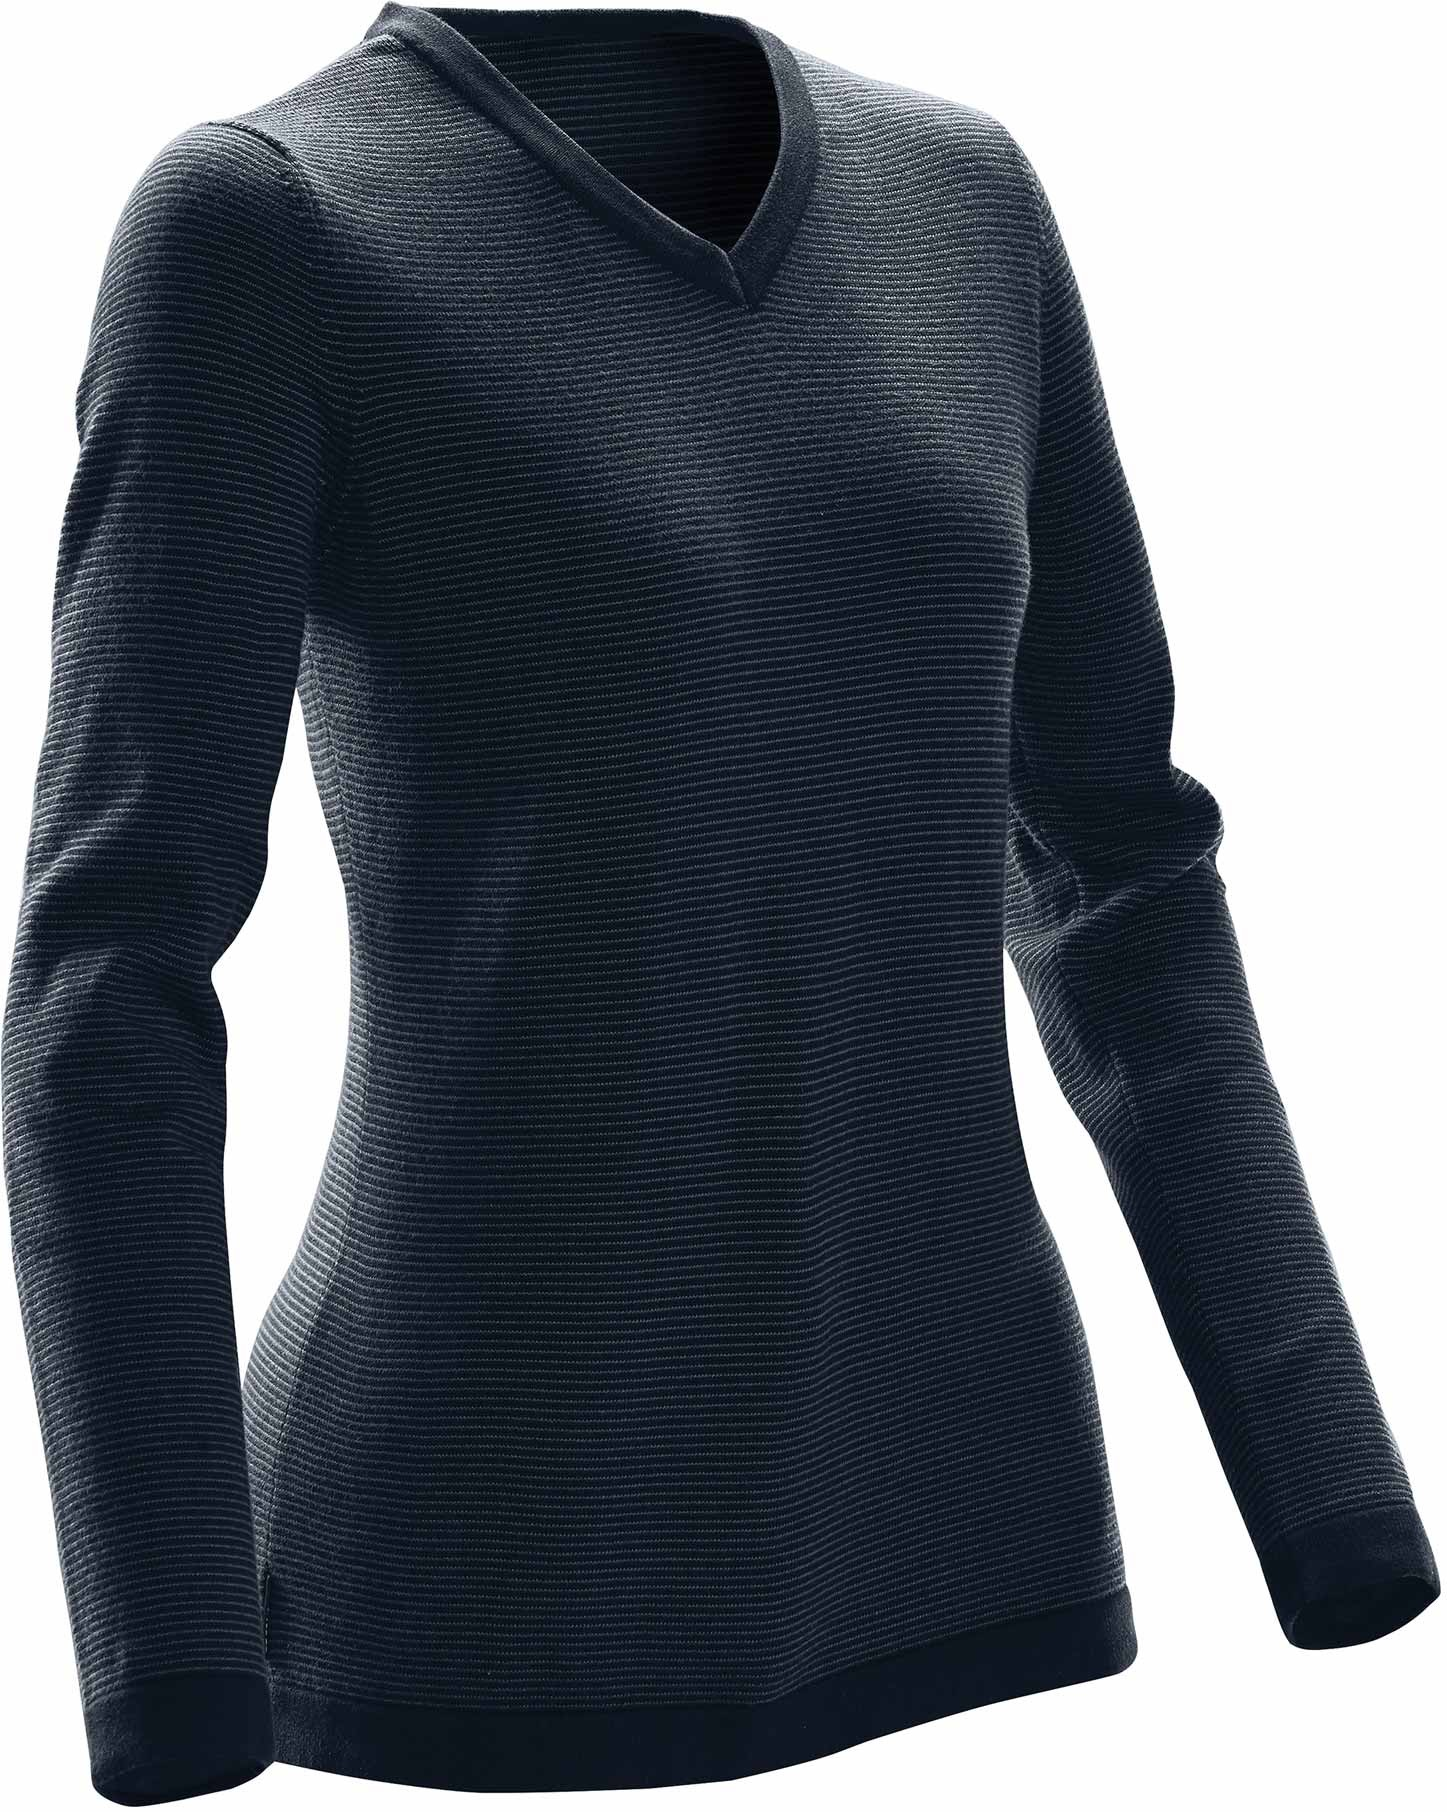 Stormtech STC-1W - Women's Horizon Sweater